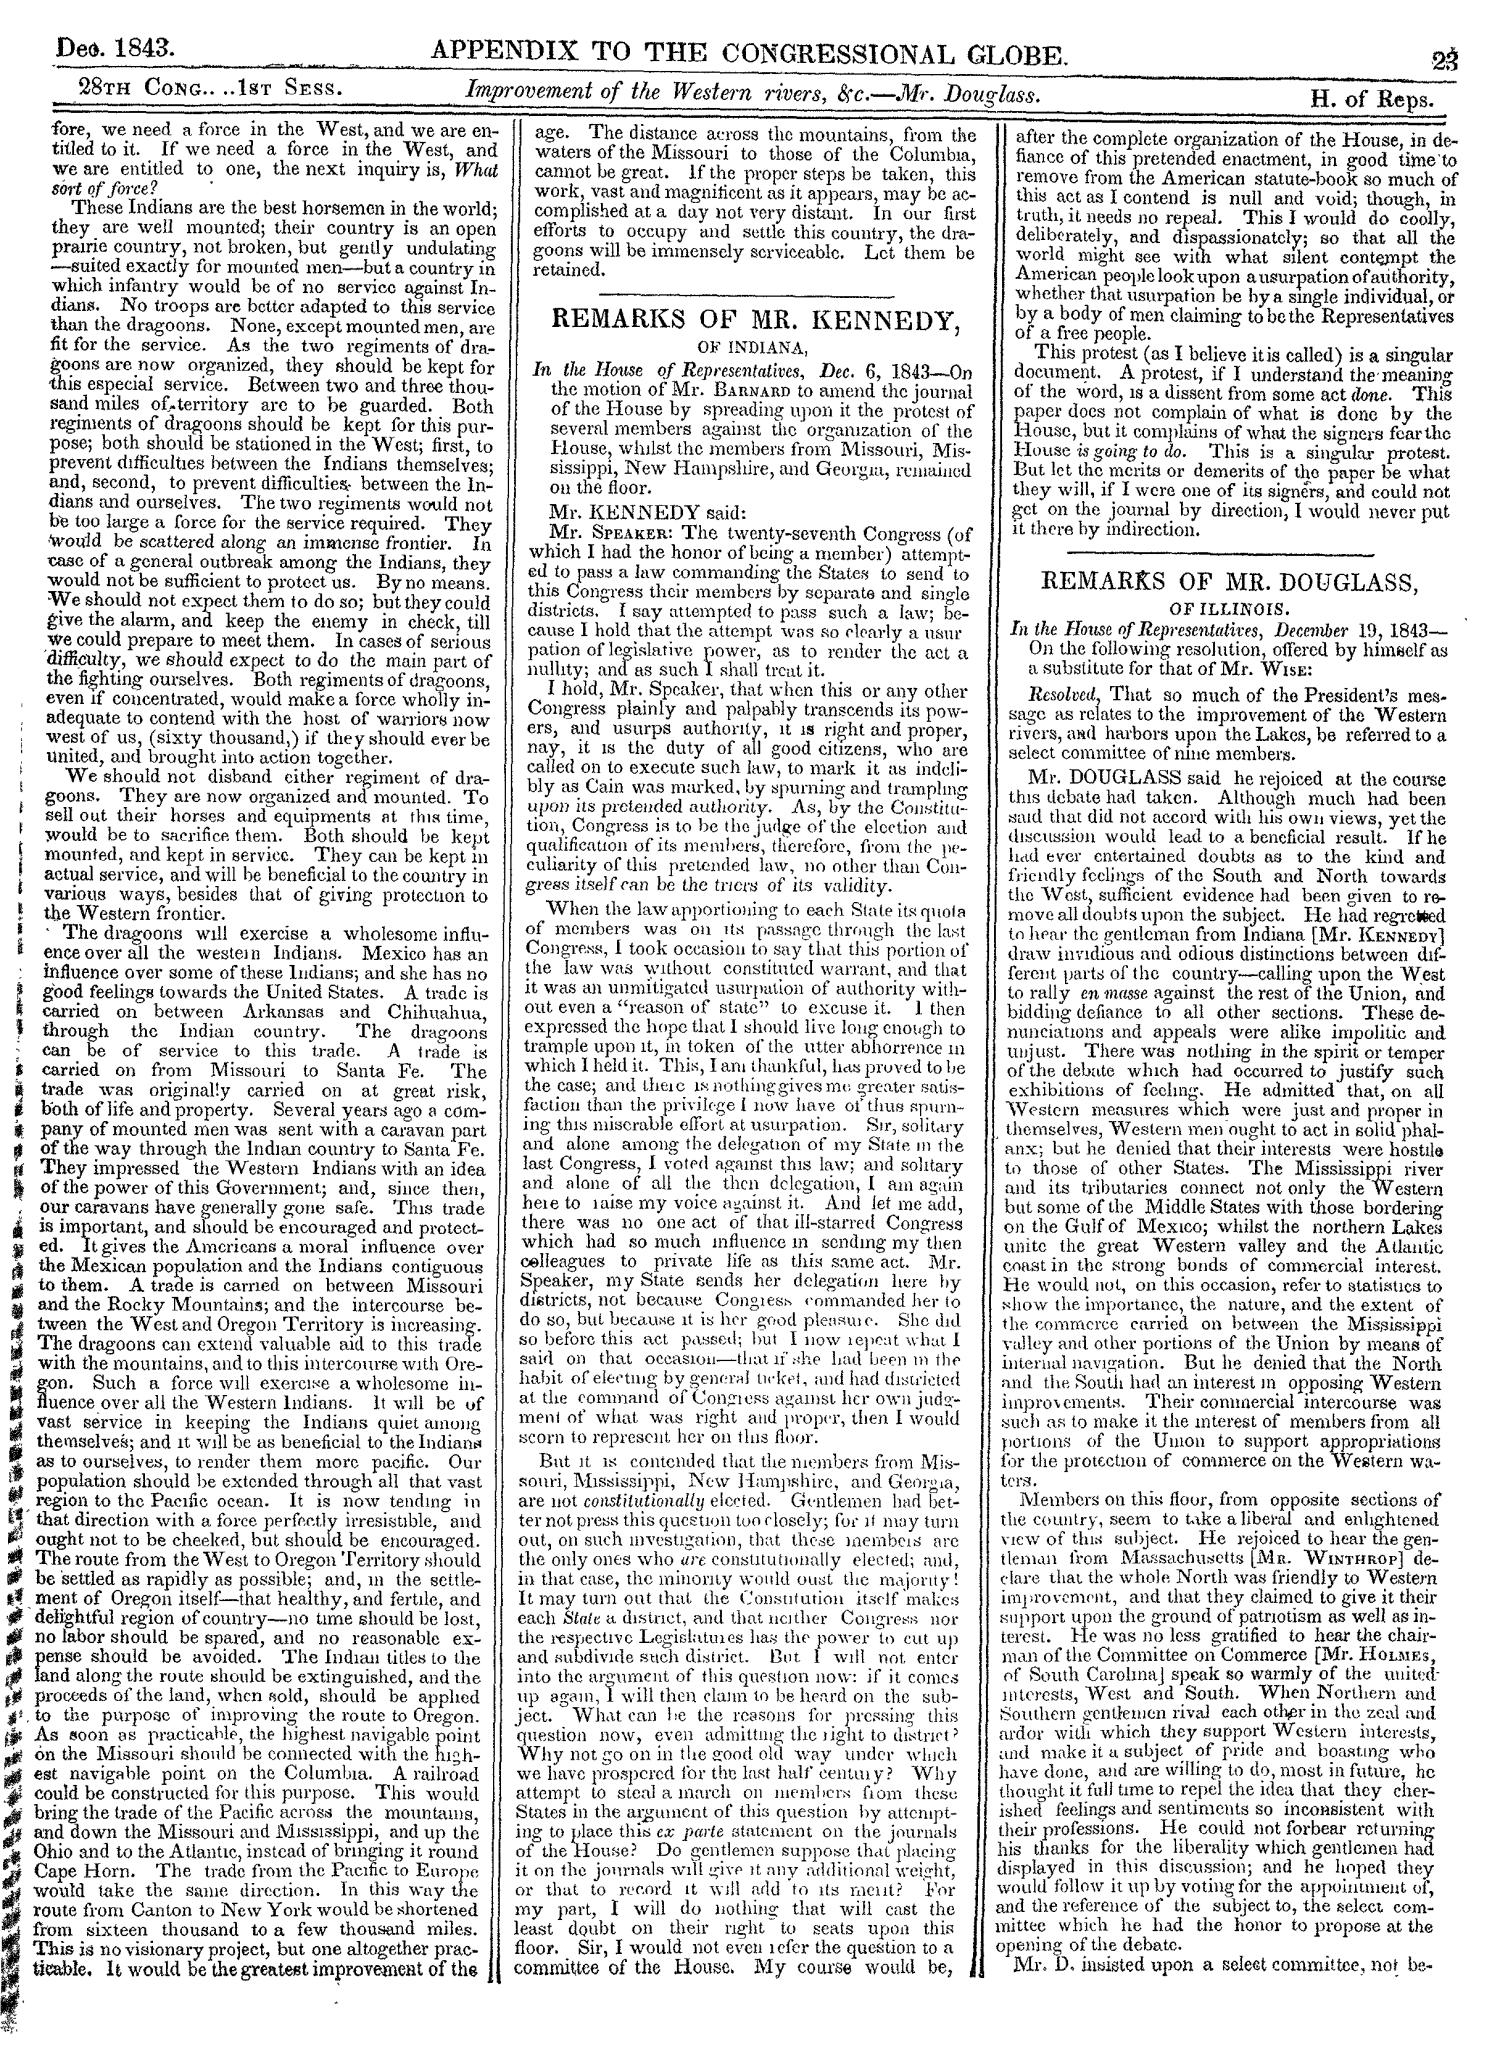 The Congressional Globe, Volume 13, Part 2: Twenty-Eighth Congress, First Session                                                                                                      23